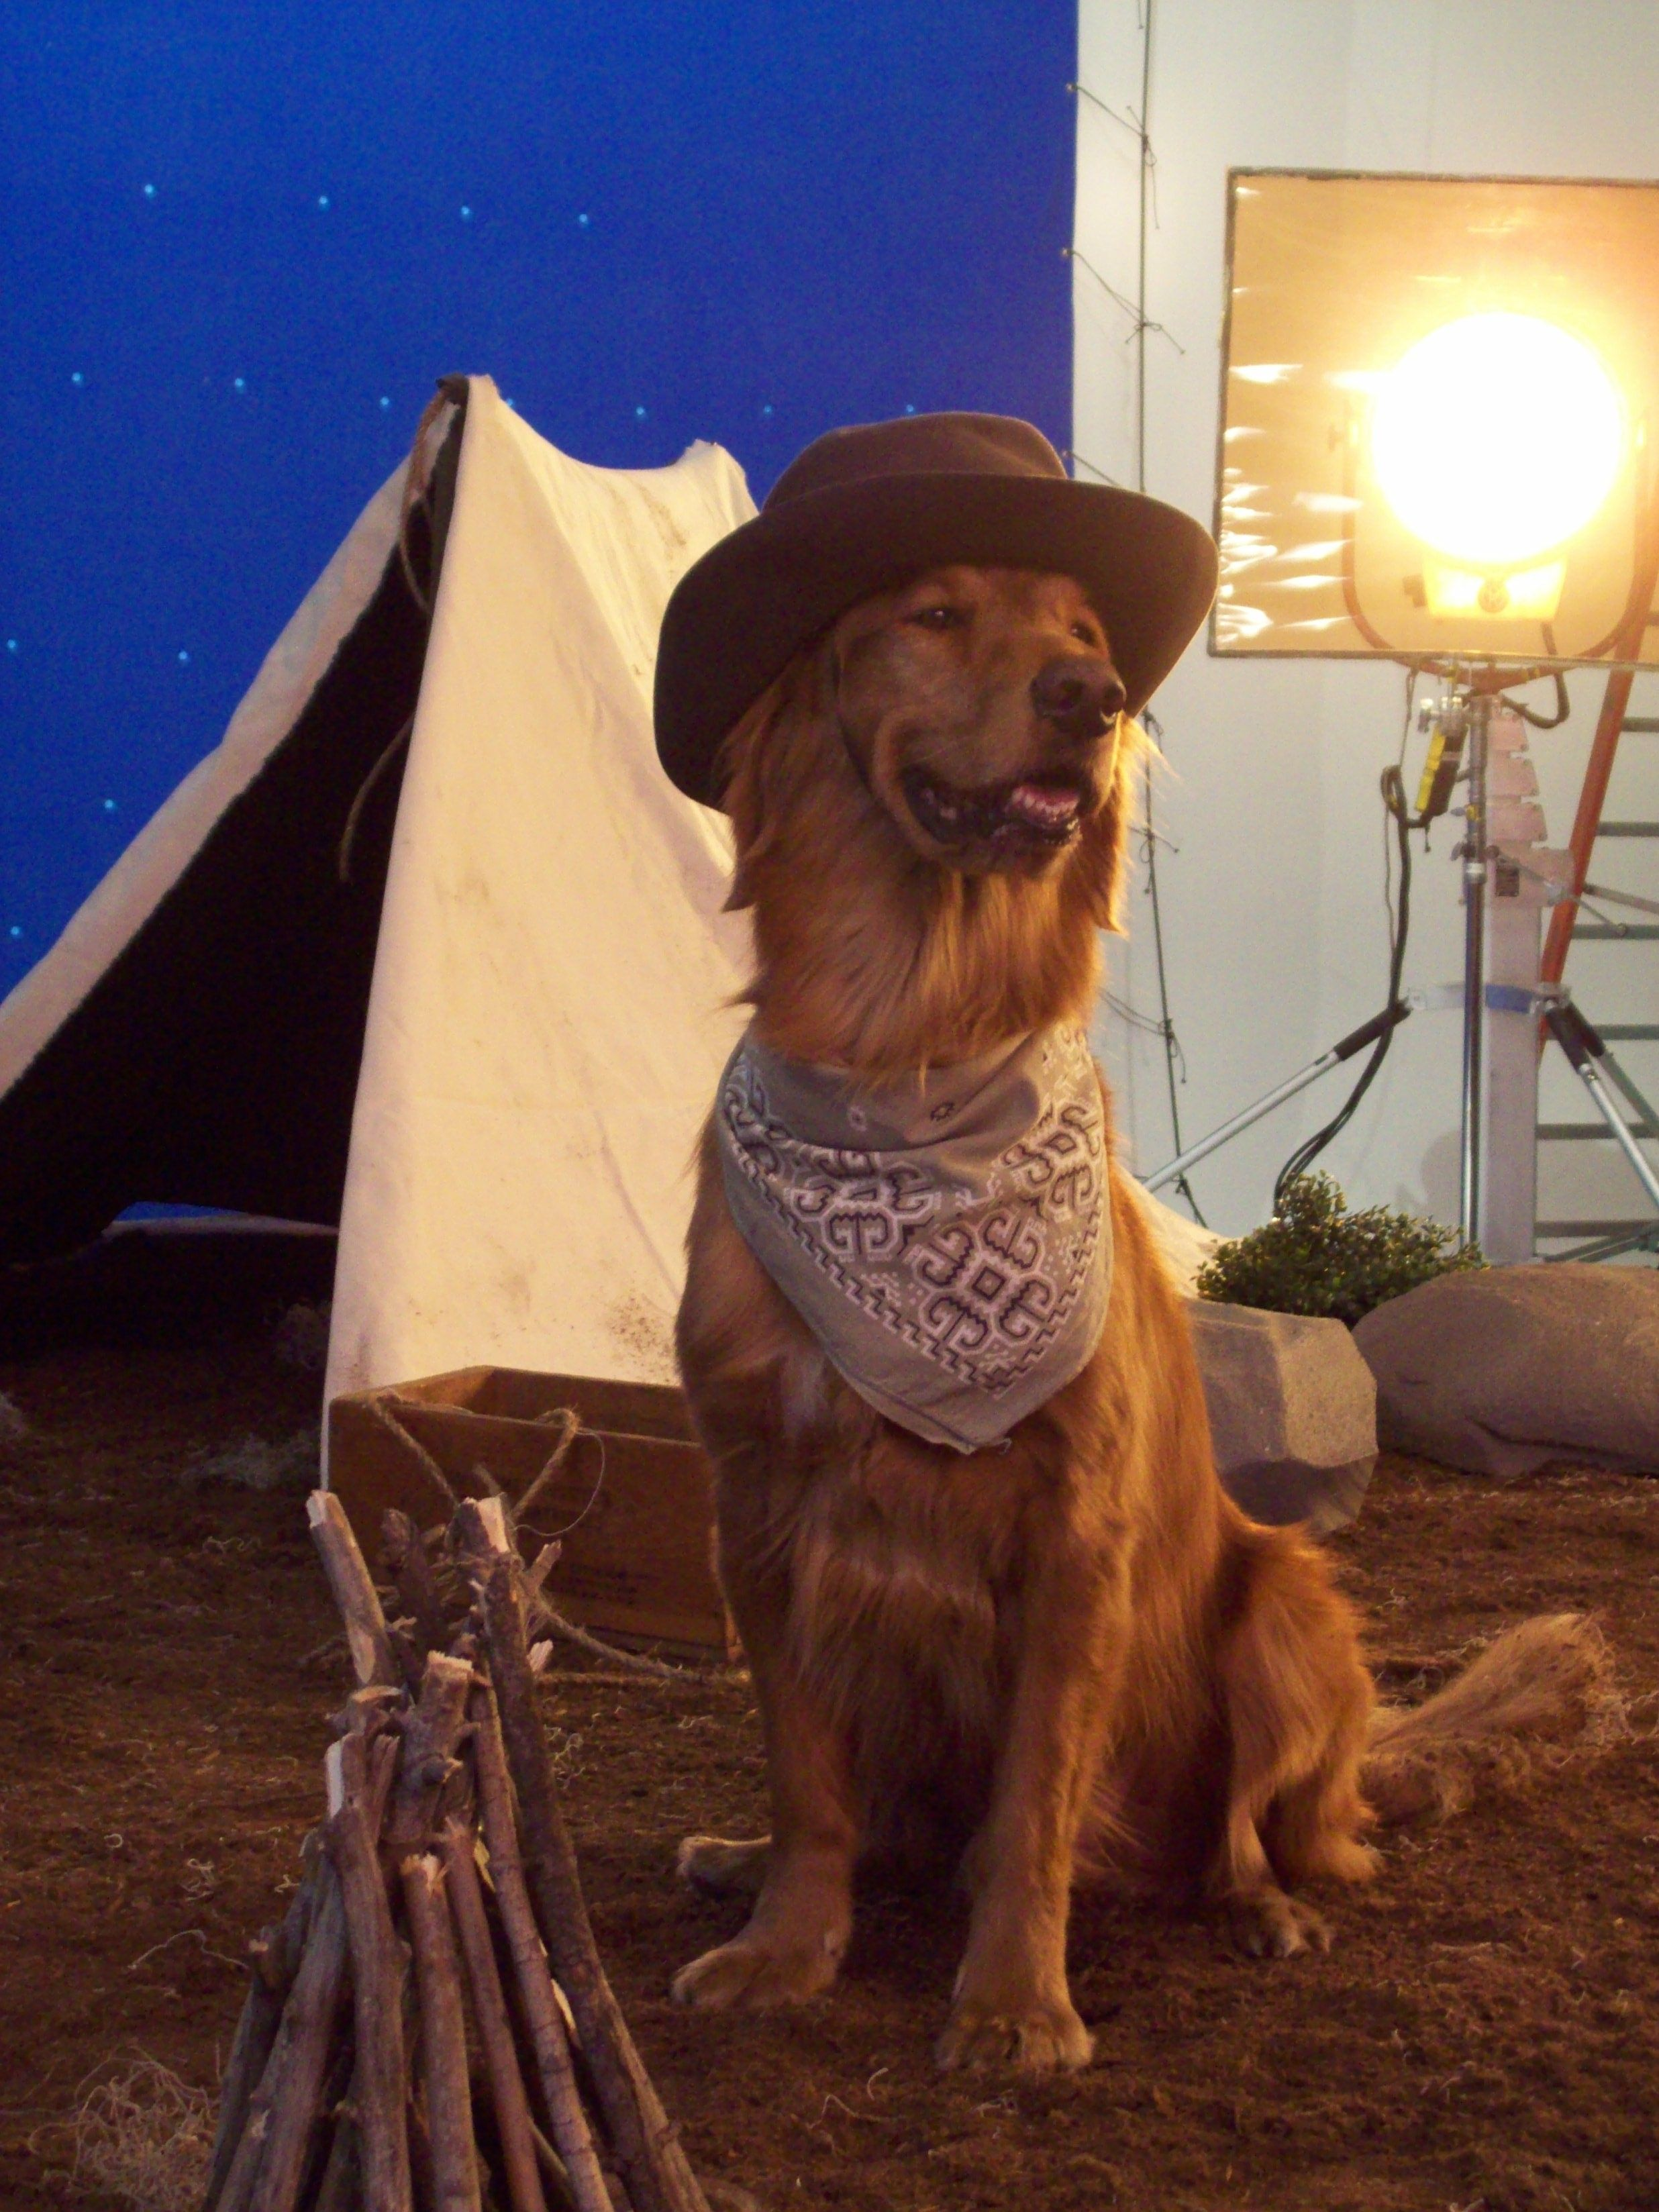 How the West was won? We'd like to think that even cowboys had trusty golden retrievers like Duke by their side.